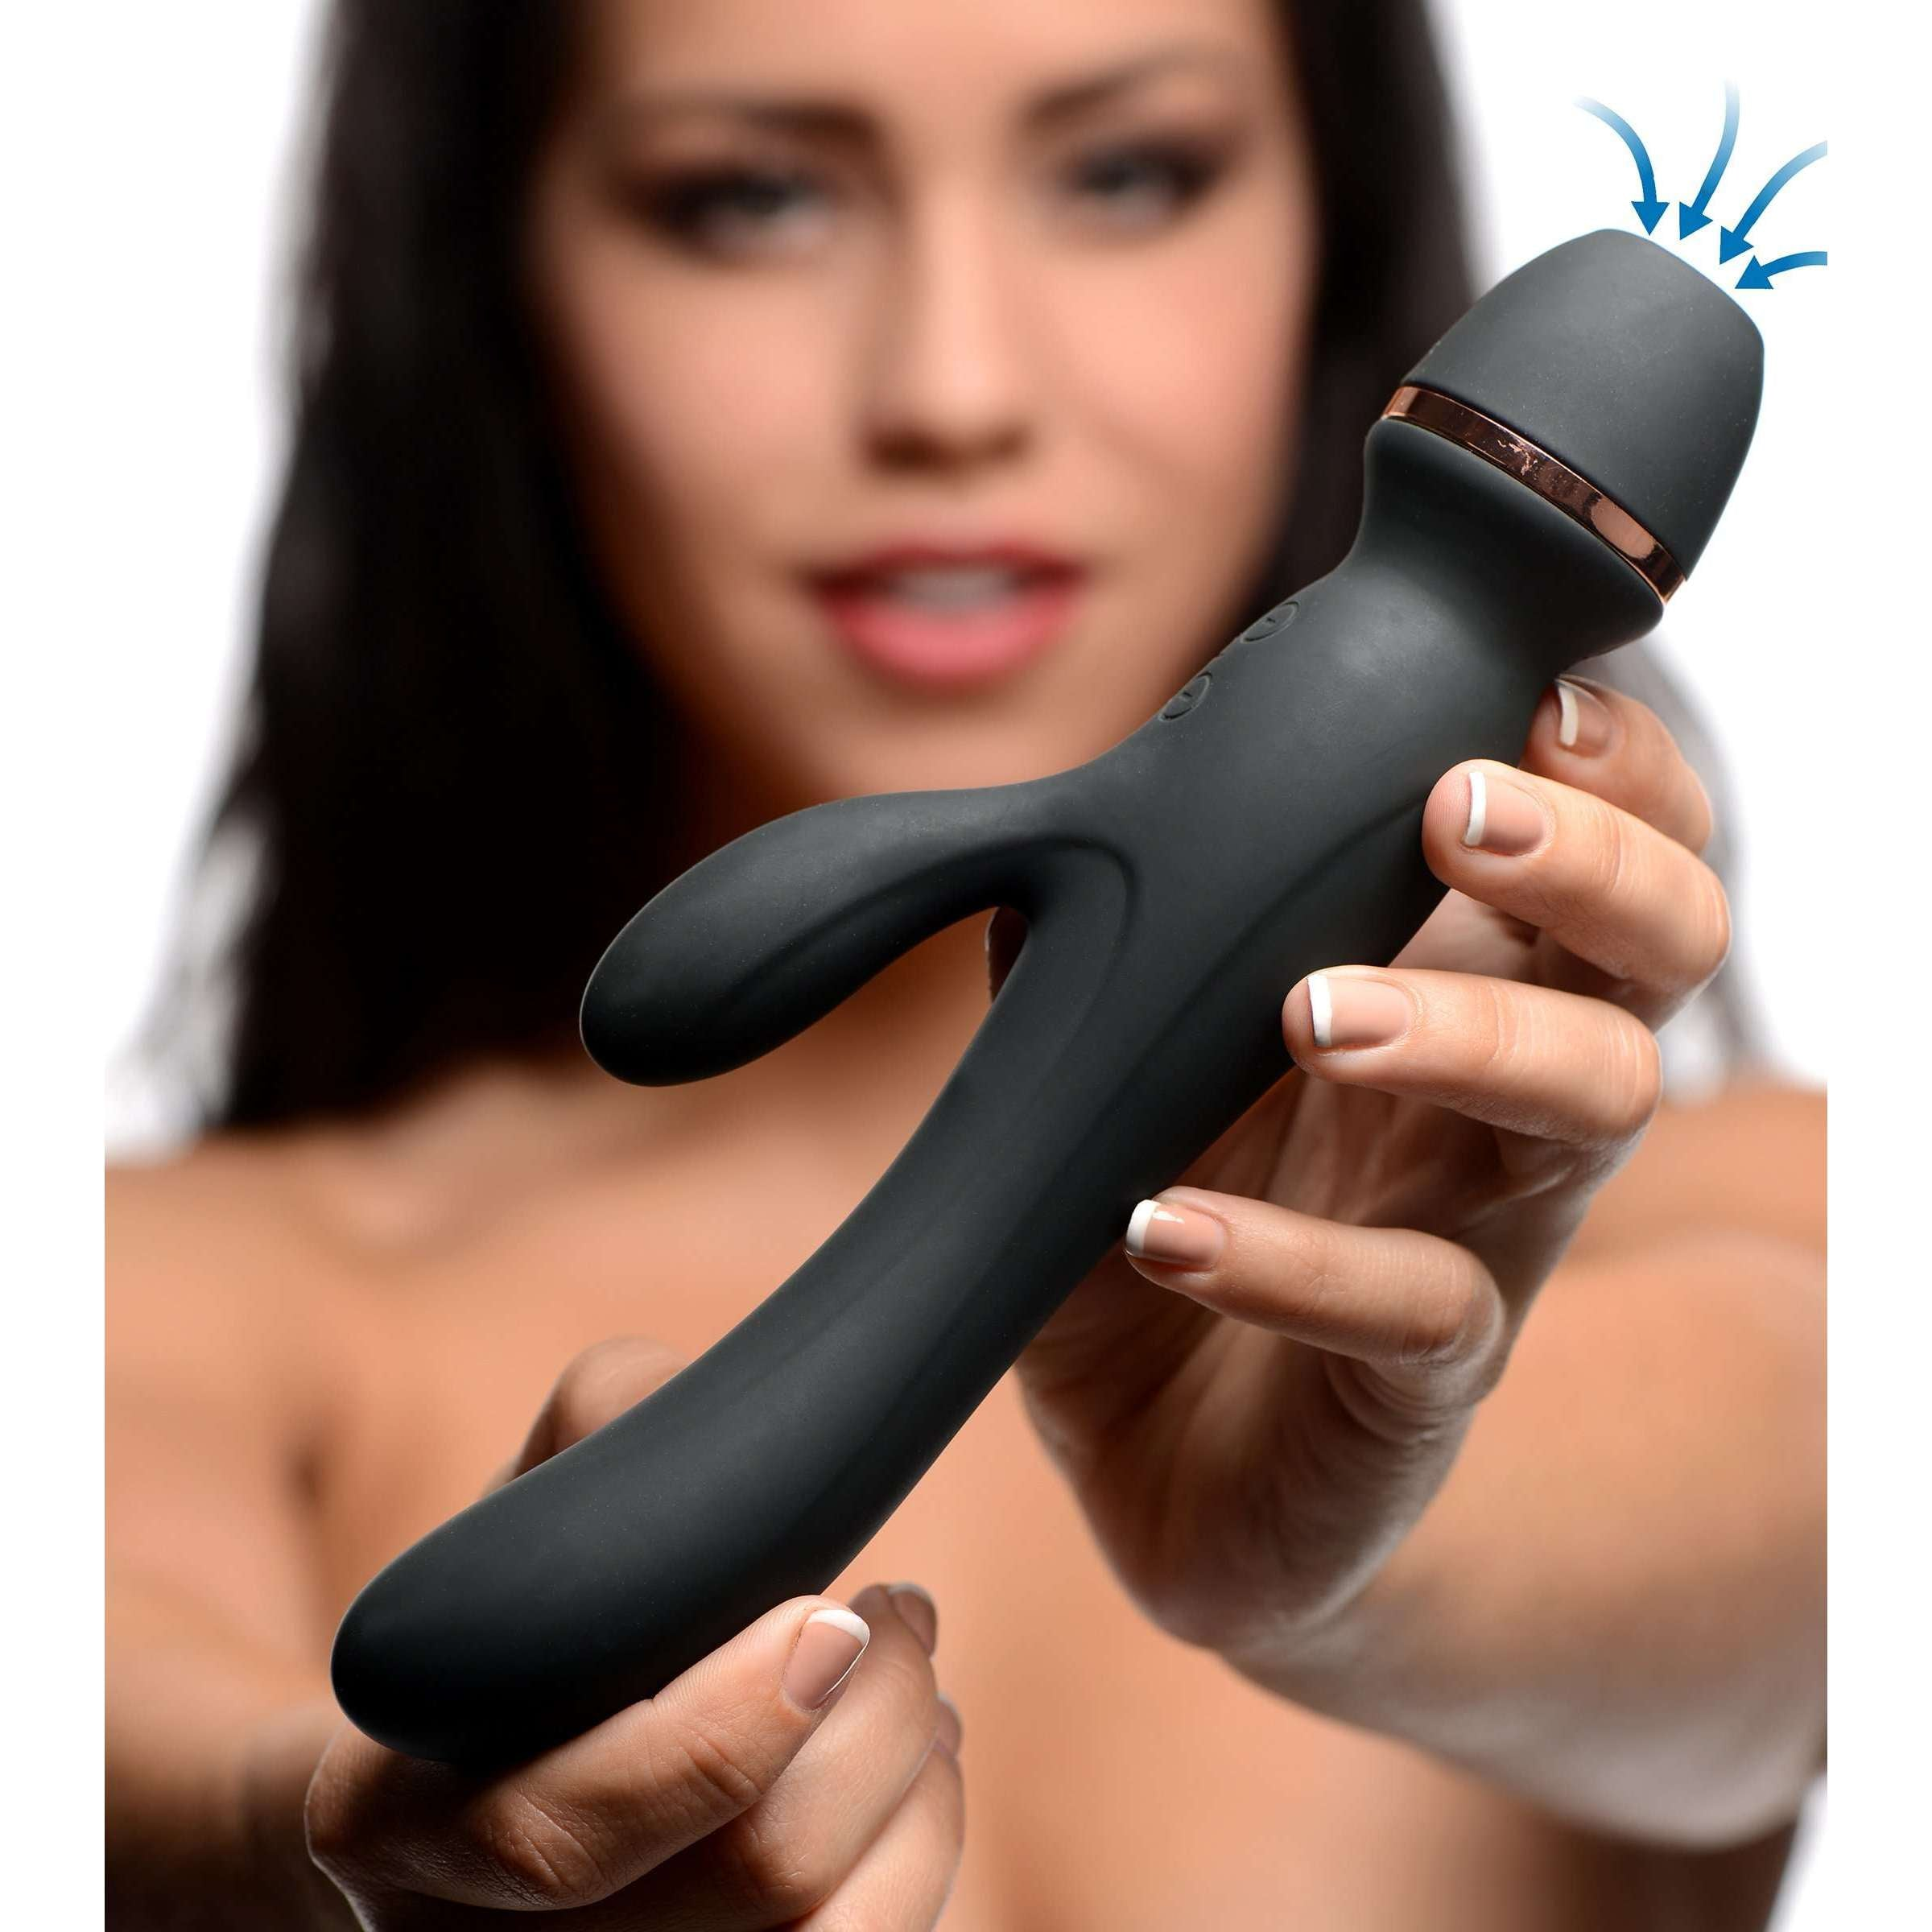 Shegasm Supreme 3 in 1 Silicone Suction Rabbit Vibe